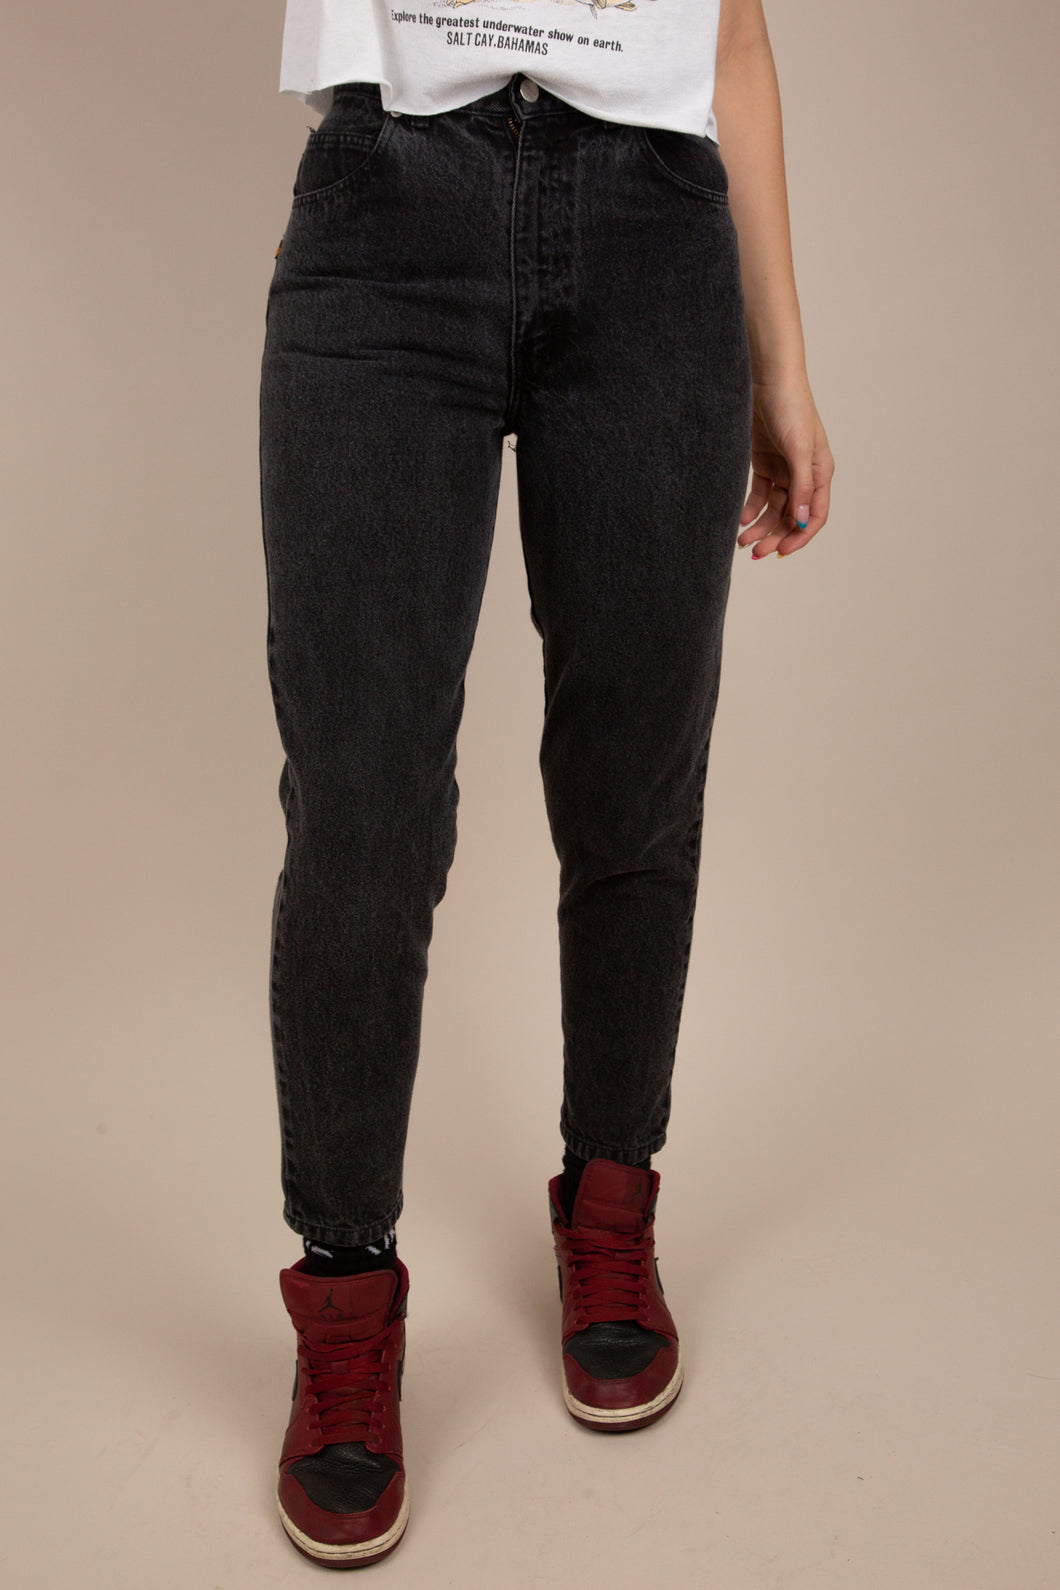 These tapered leg jeans are black with black stitching and silver buttons and domes.  Finished off with little bows on the back of the ankles and branded on the back pocket.